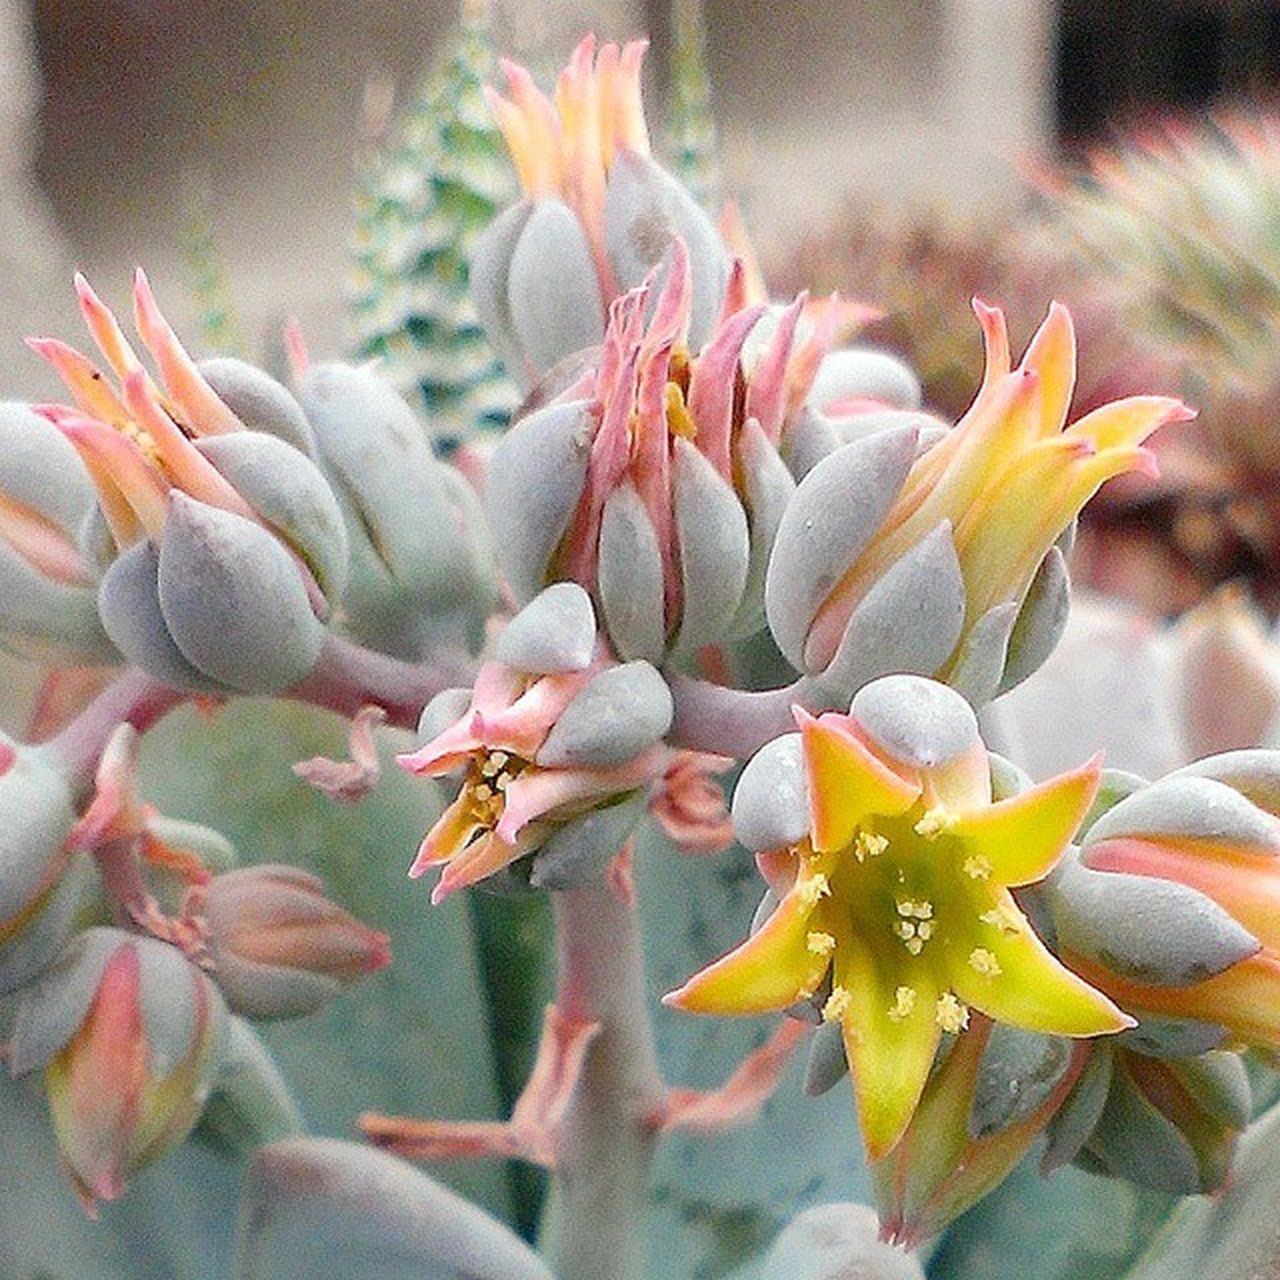 Pachyveria 'Powder Puff' Succulent Flower Succulents_only Succulove Plant_addiction Mygarden Plantsforsale WorldWidePlants